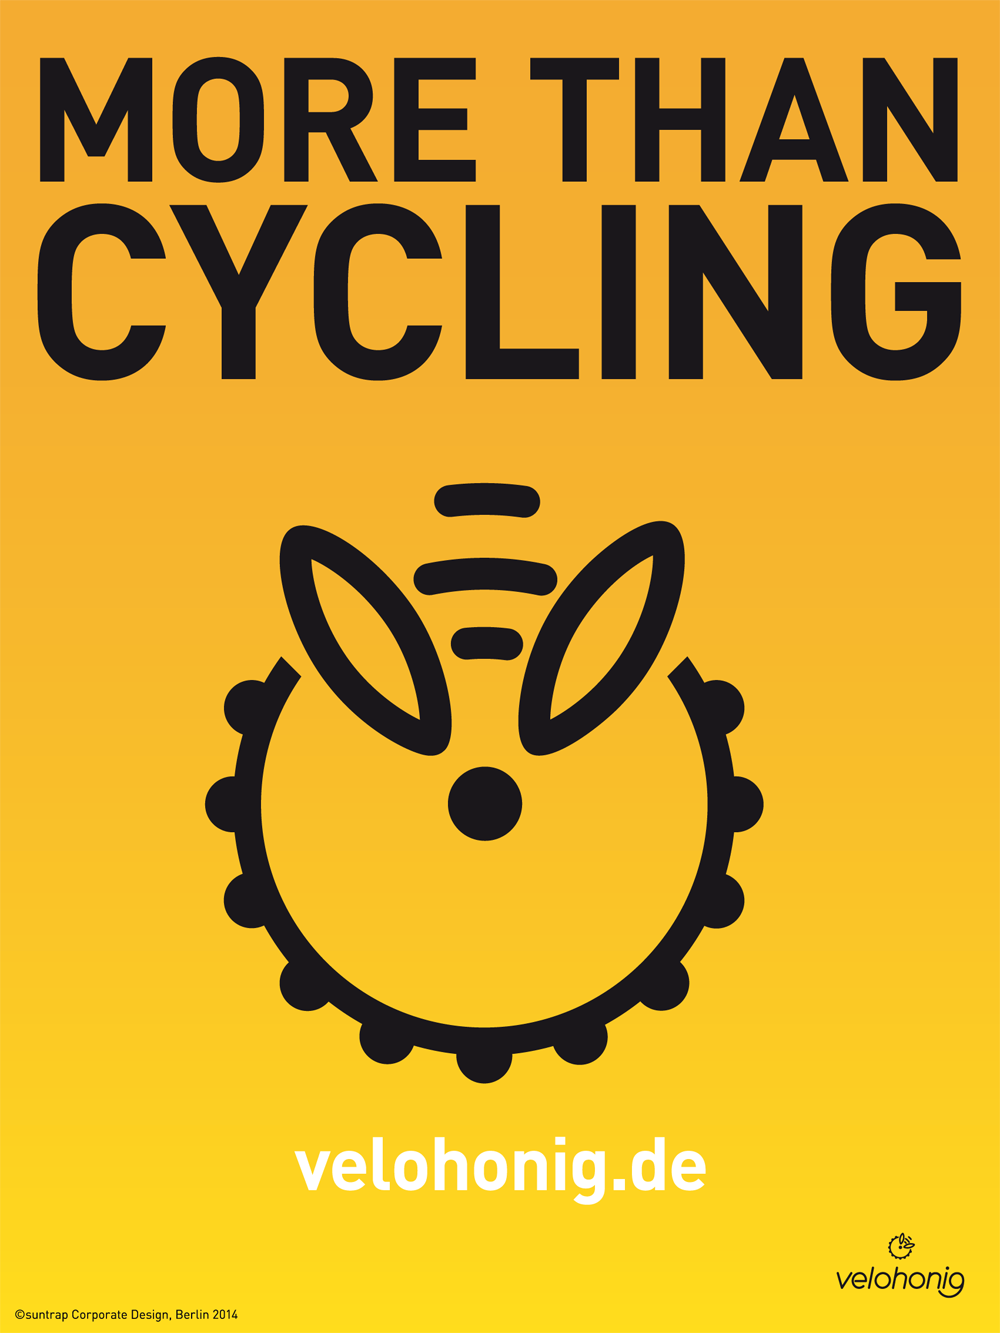 velohonig_more_than_cycling